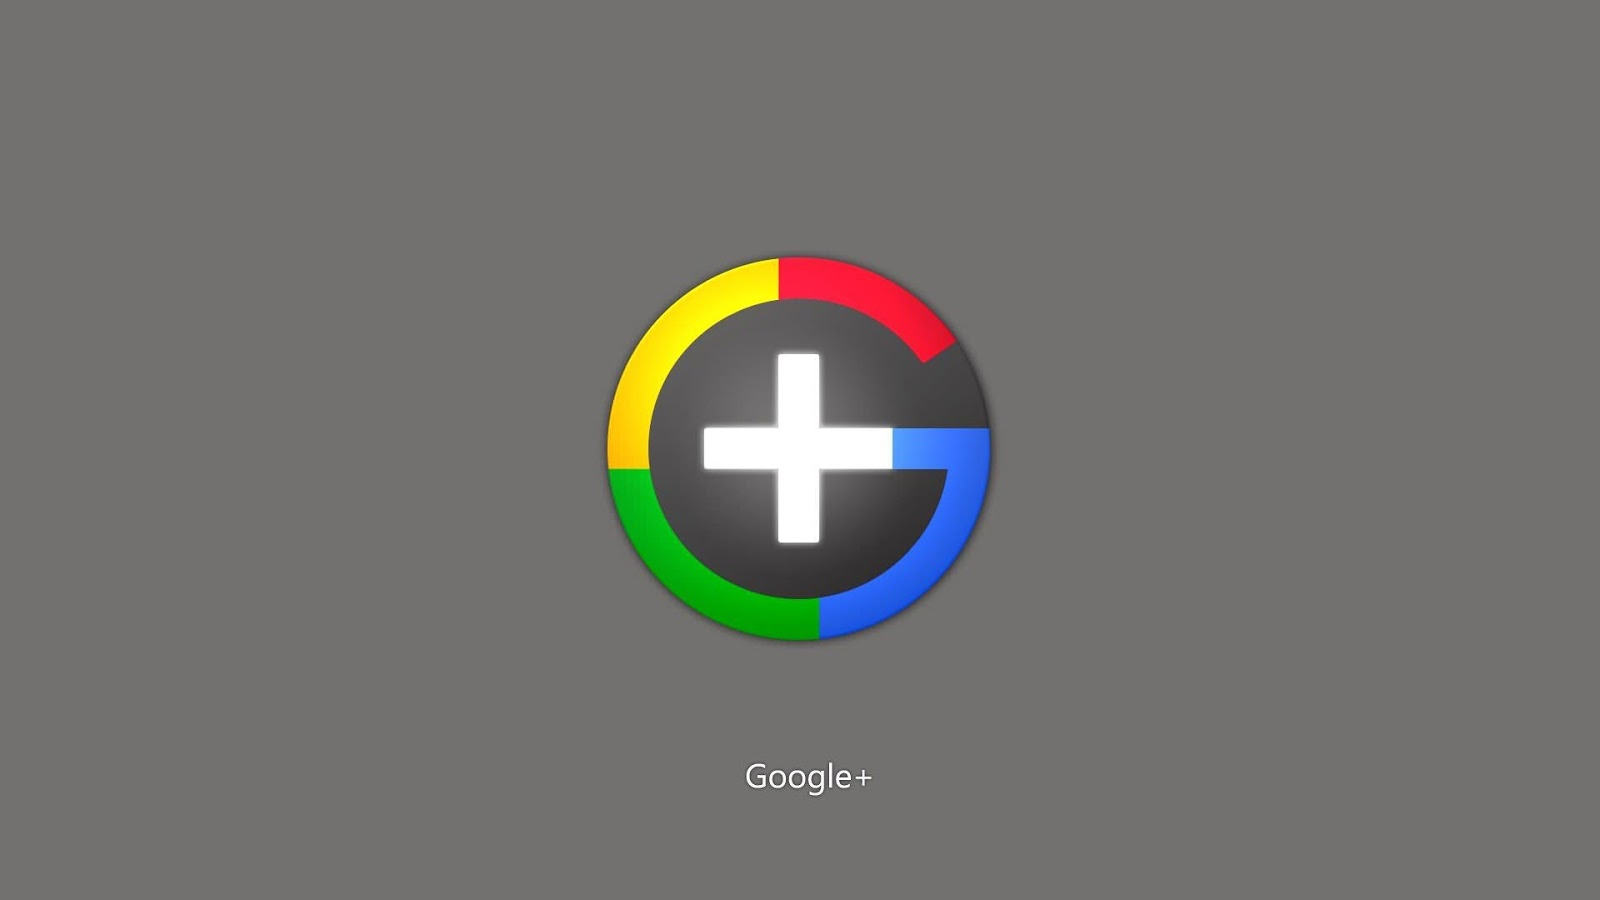 Google Plus Logo in Neon Minialist Design